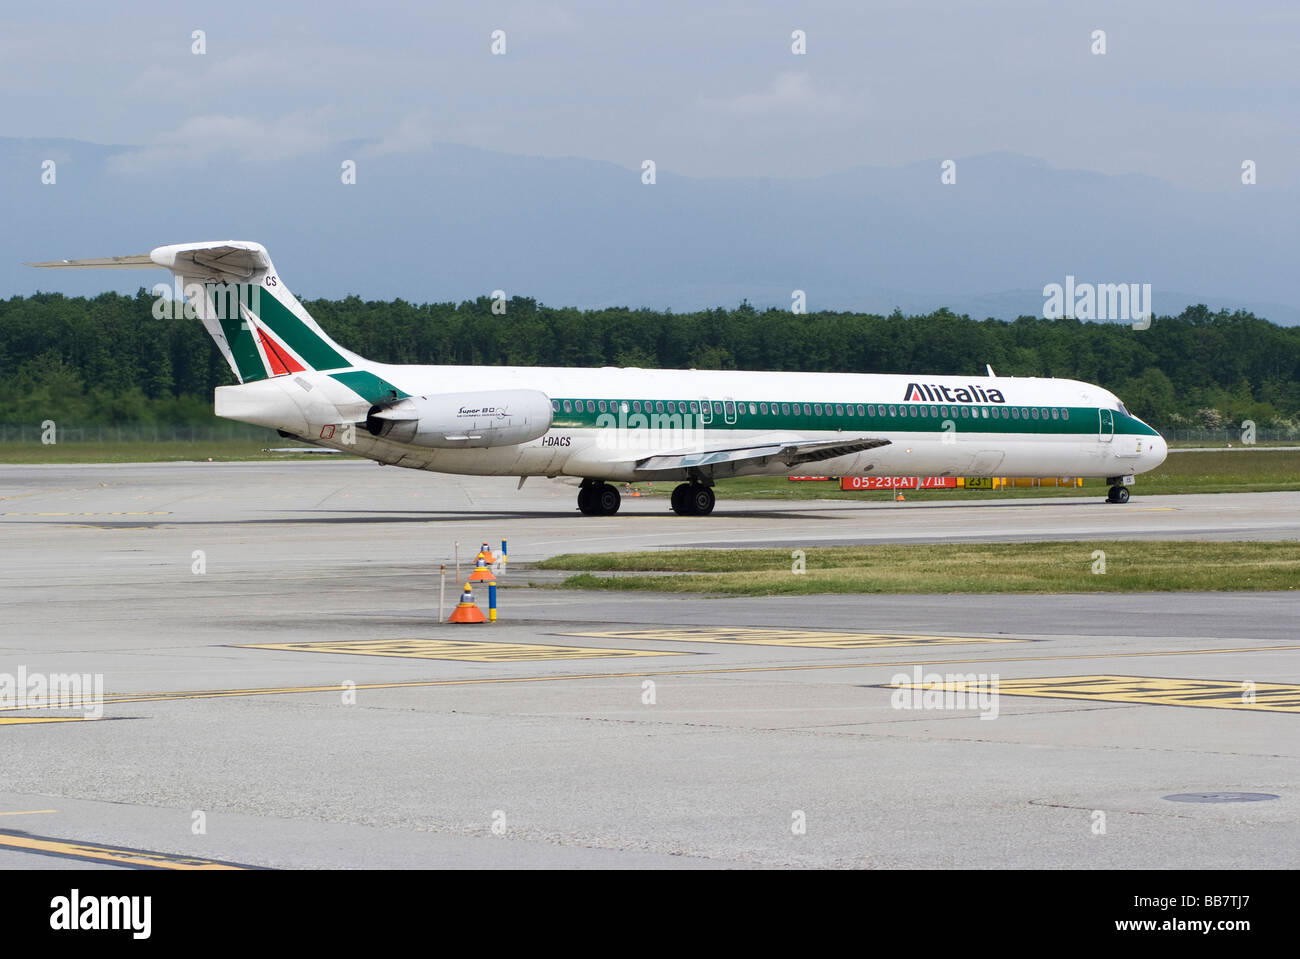 Alitalia Airlines Boeing (McDonnell Douglas) MD-82 (DC-9-82) I-DACS Airliner Taxiing at Geneva Airport Switzerland Stock Photo